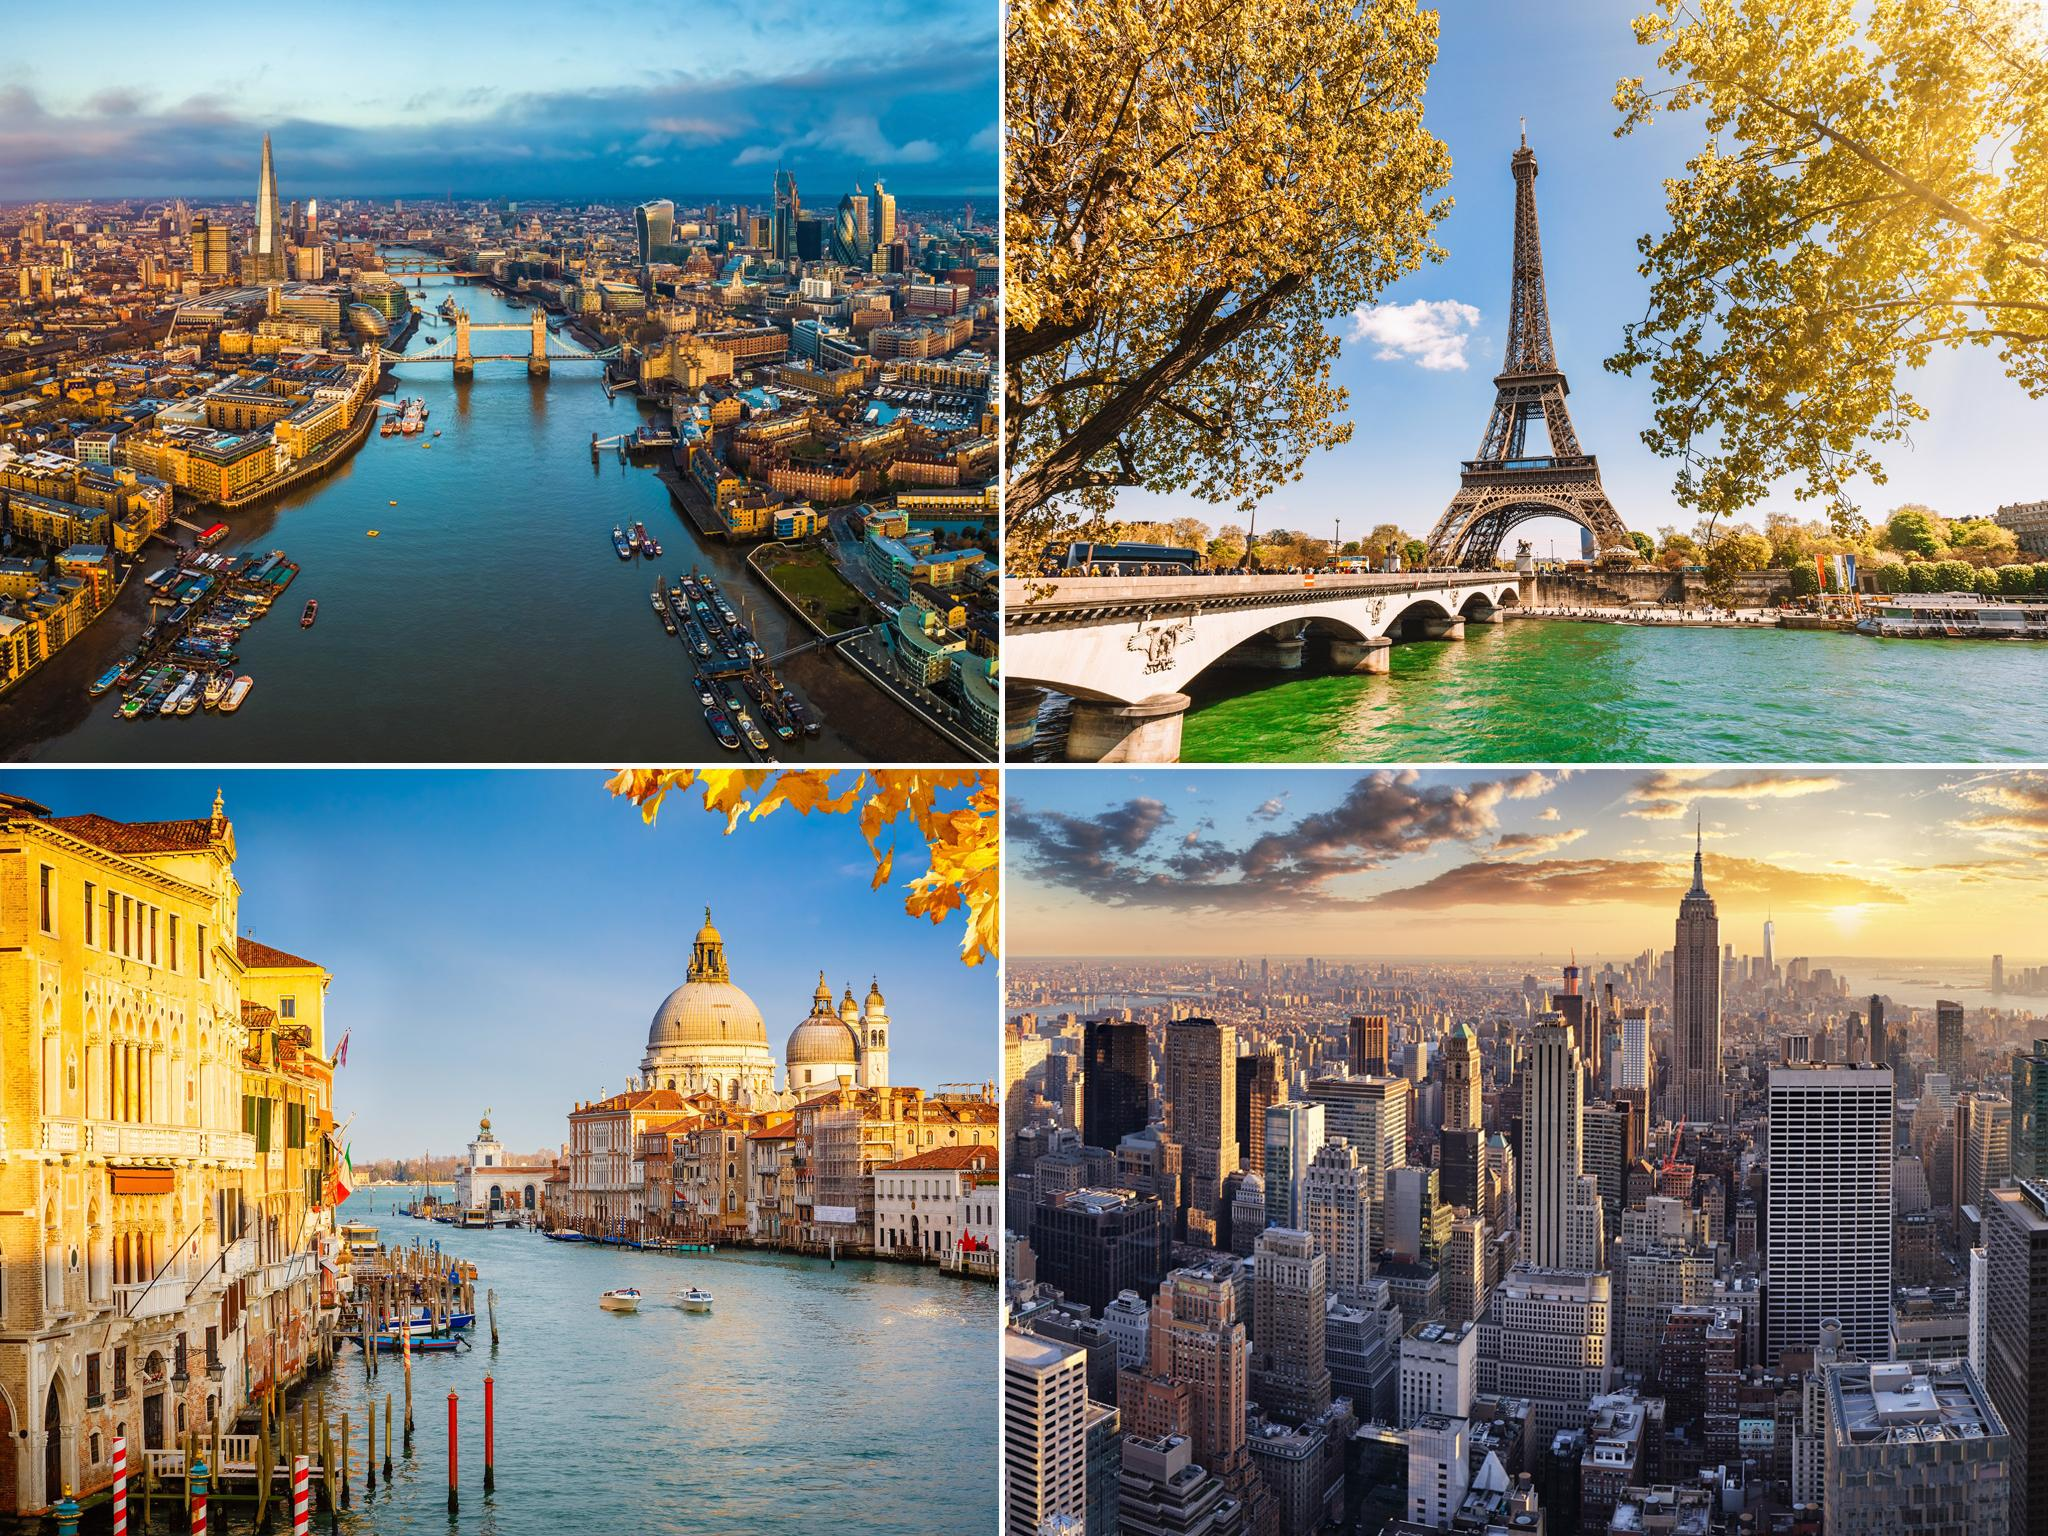 The most beautiful cities in the world revealed